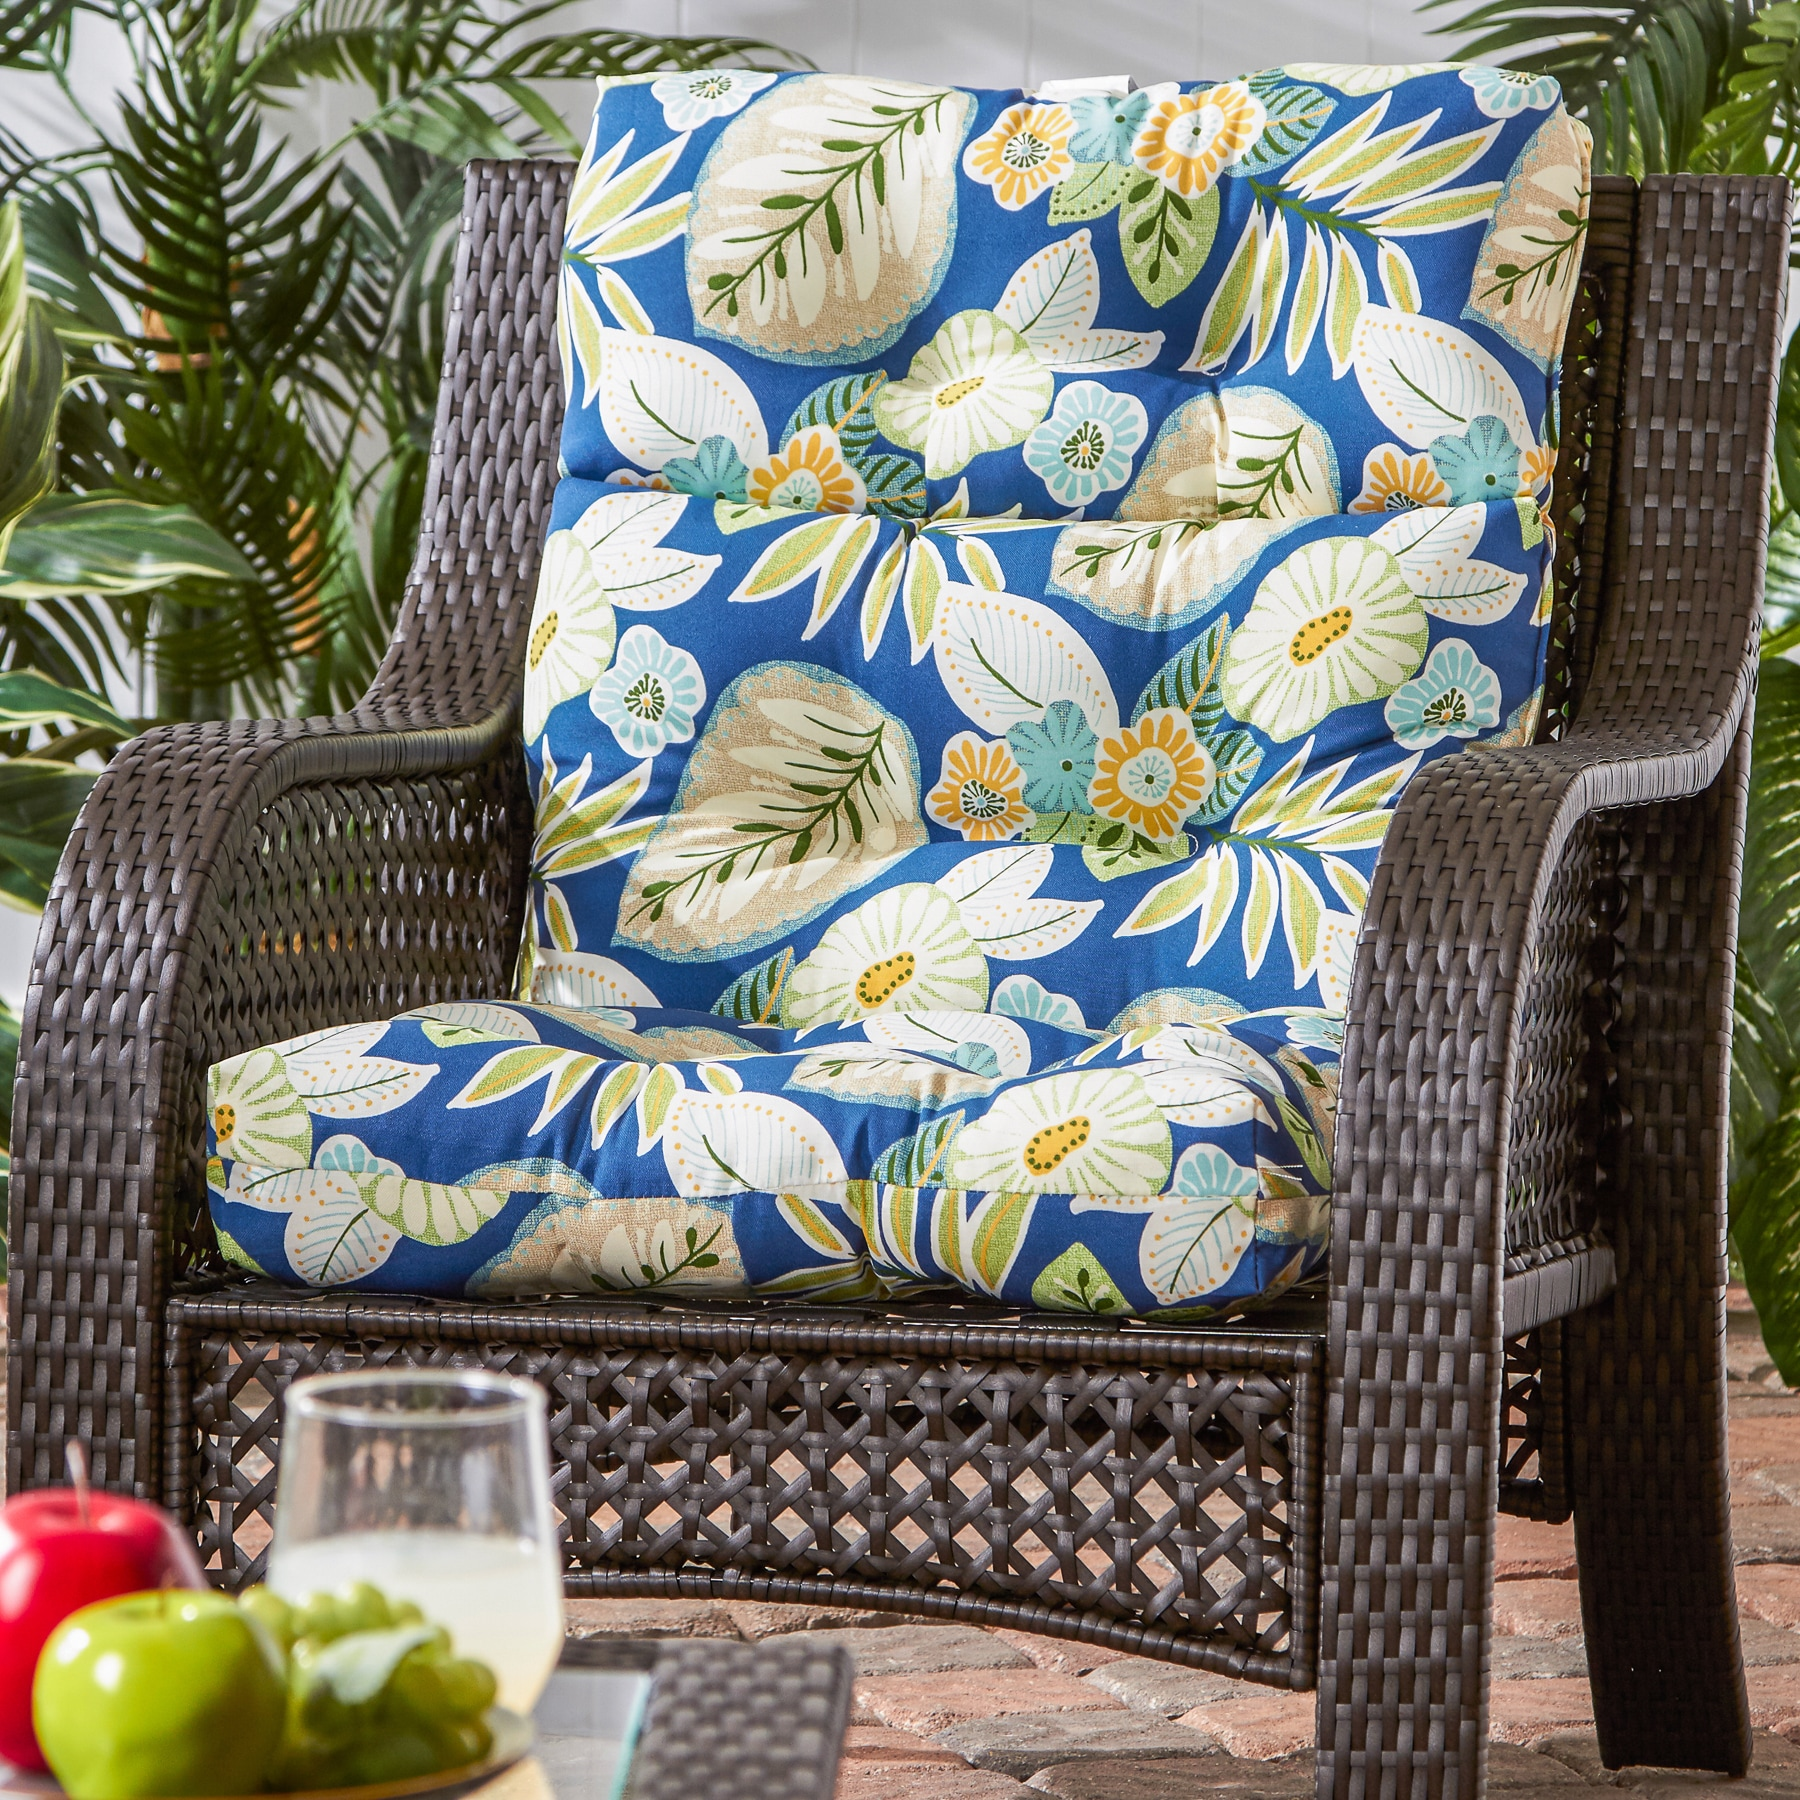 44x22 inch 3 section Outdoor High Back Chair Cushion Free